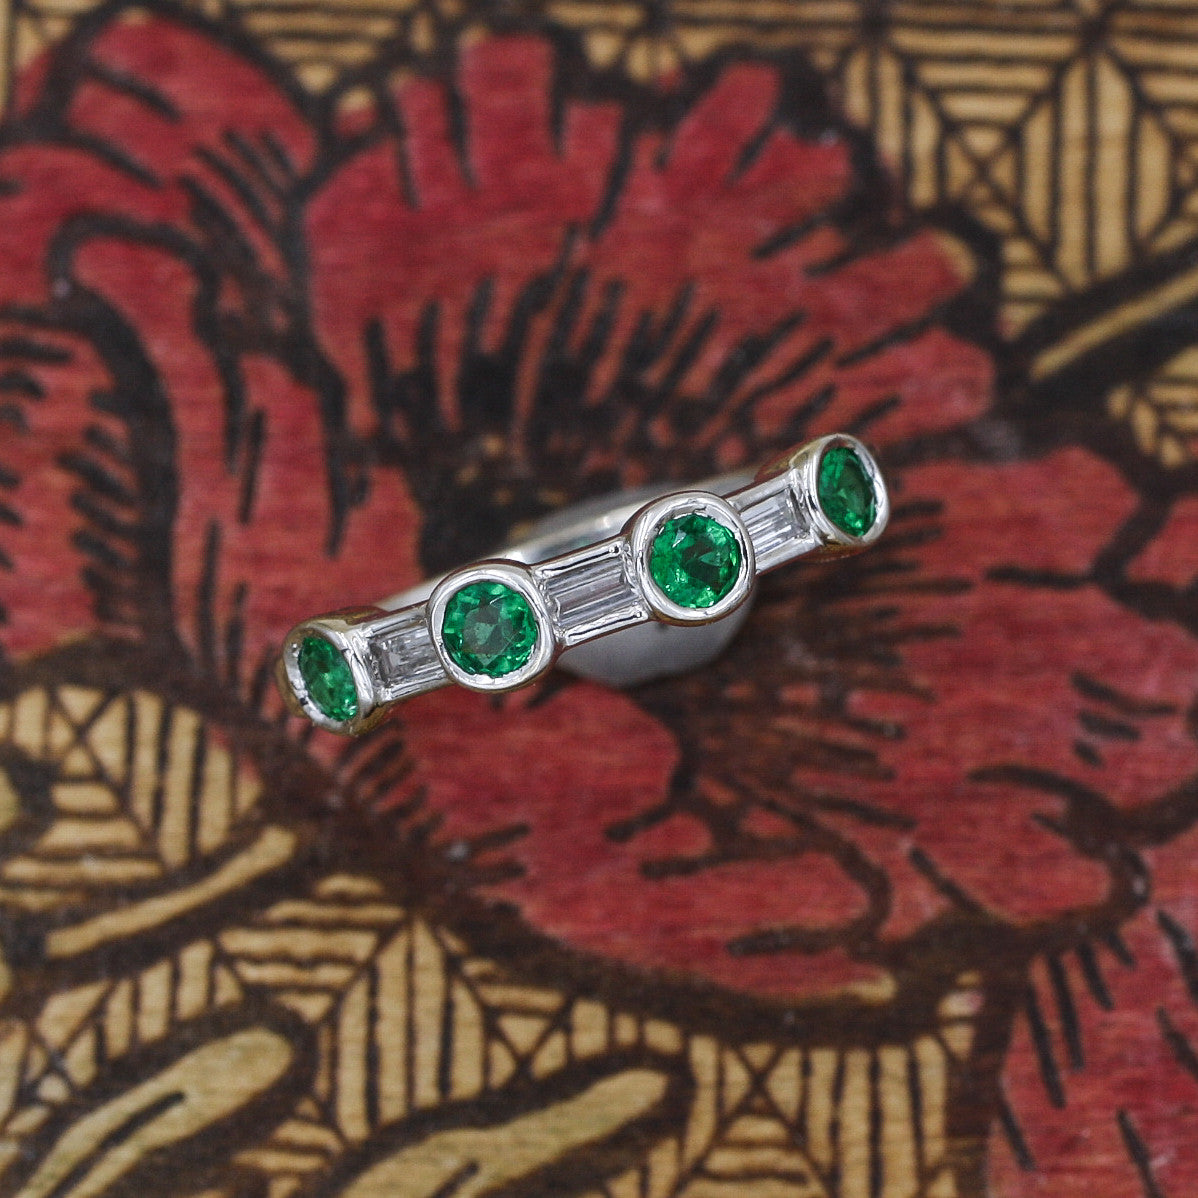 Alternating Round Cut Emerald and Baguette Cut Diamond Band- top view